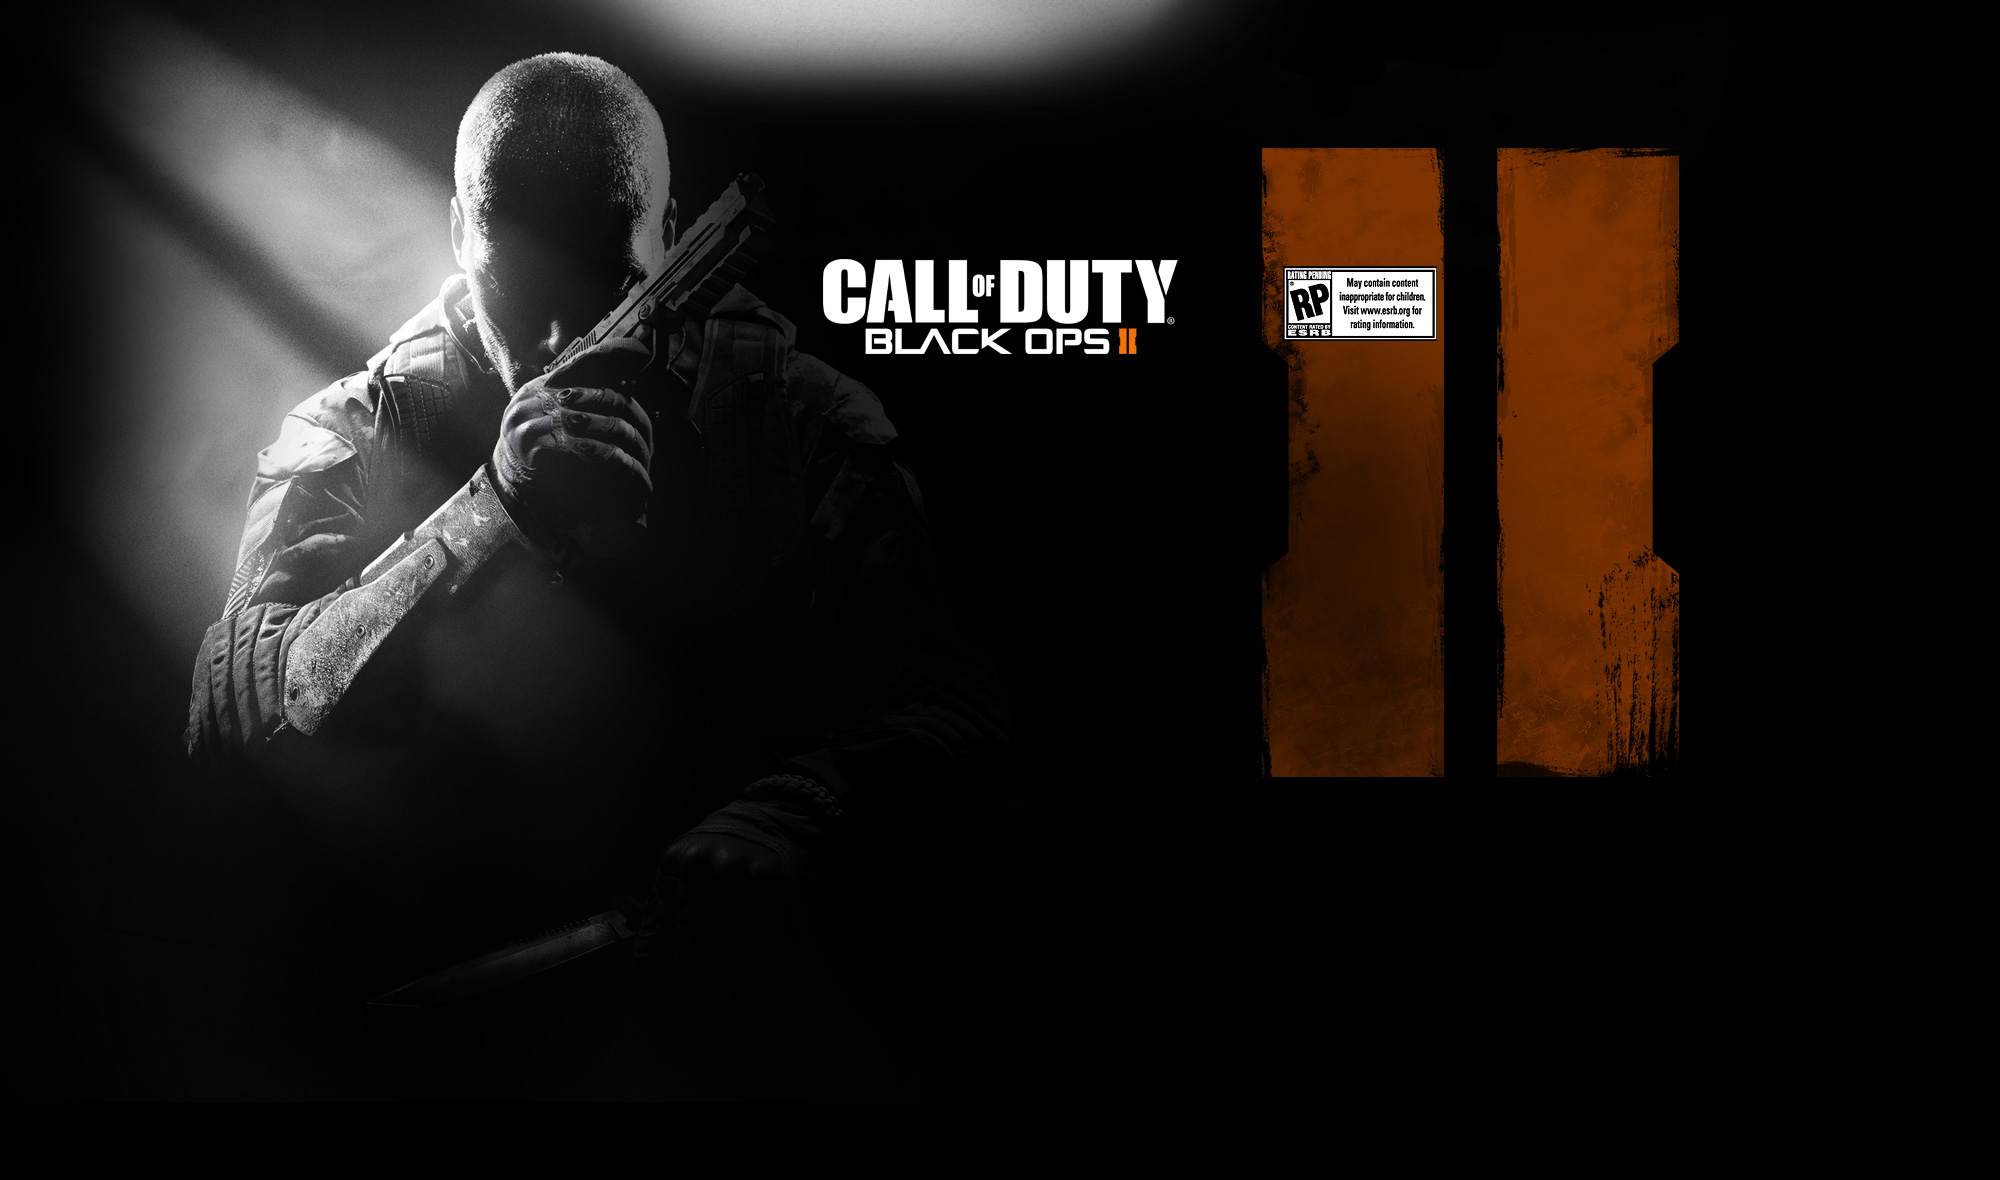 Call Of Duty Black Ops Ii Hd Wallpaper Background Image